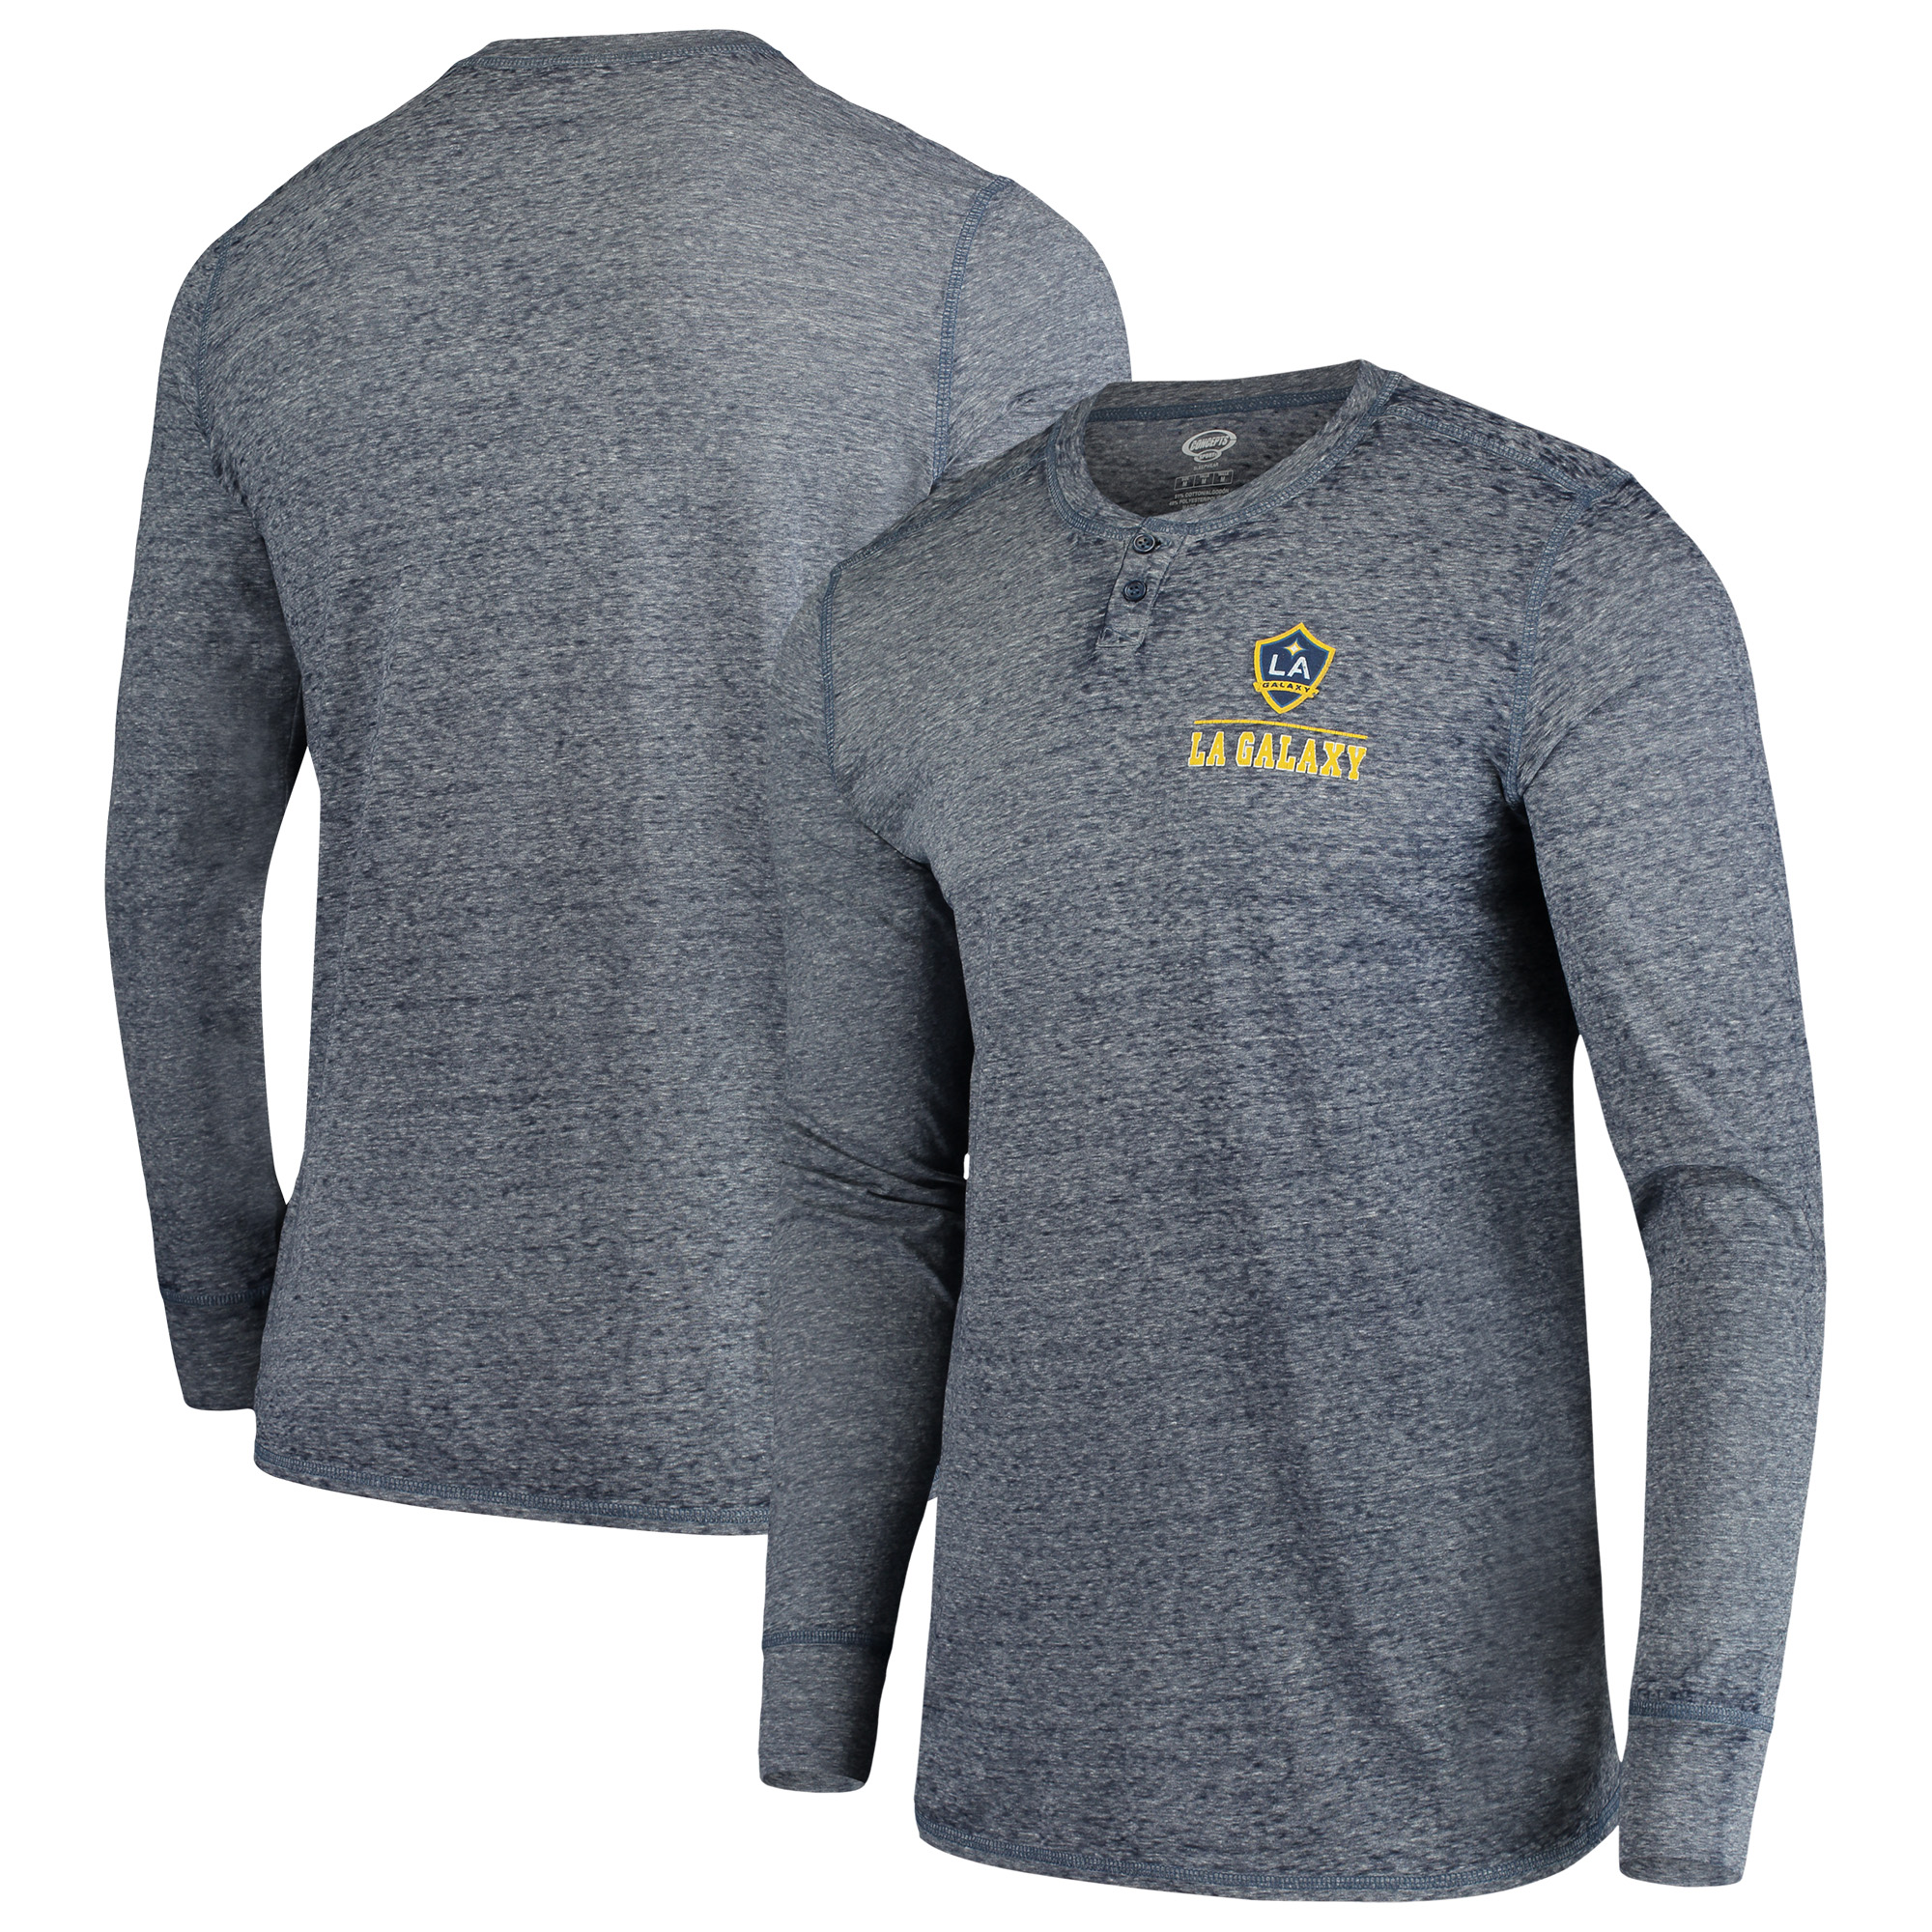 LA Galaxy Concepts Sport Podium Henley Long Sleeve T-Shirt - Navy